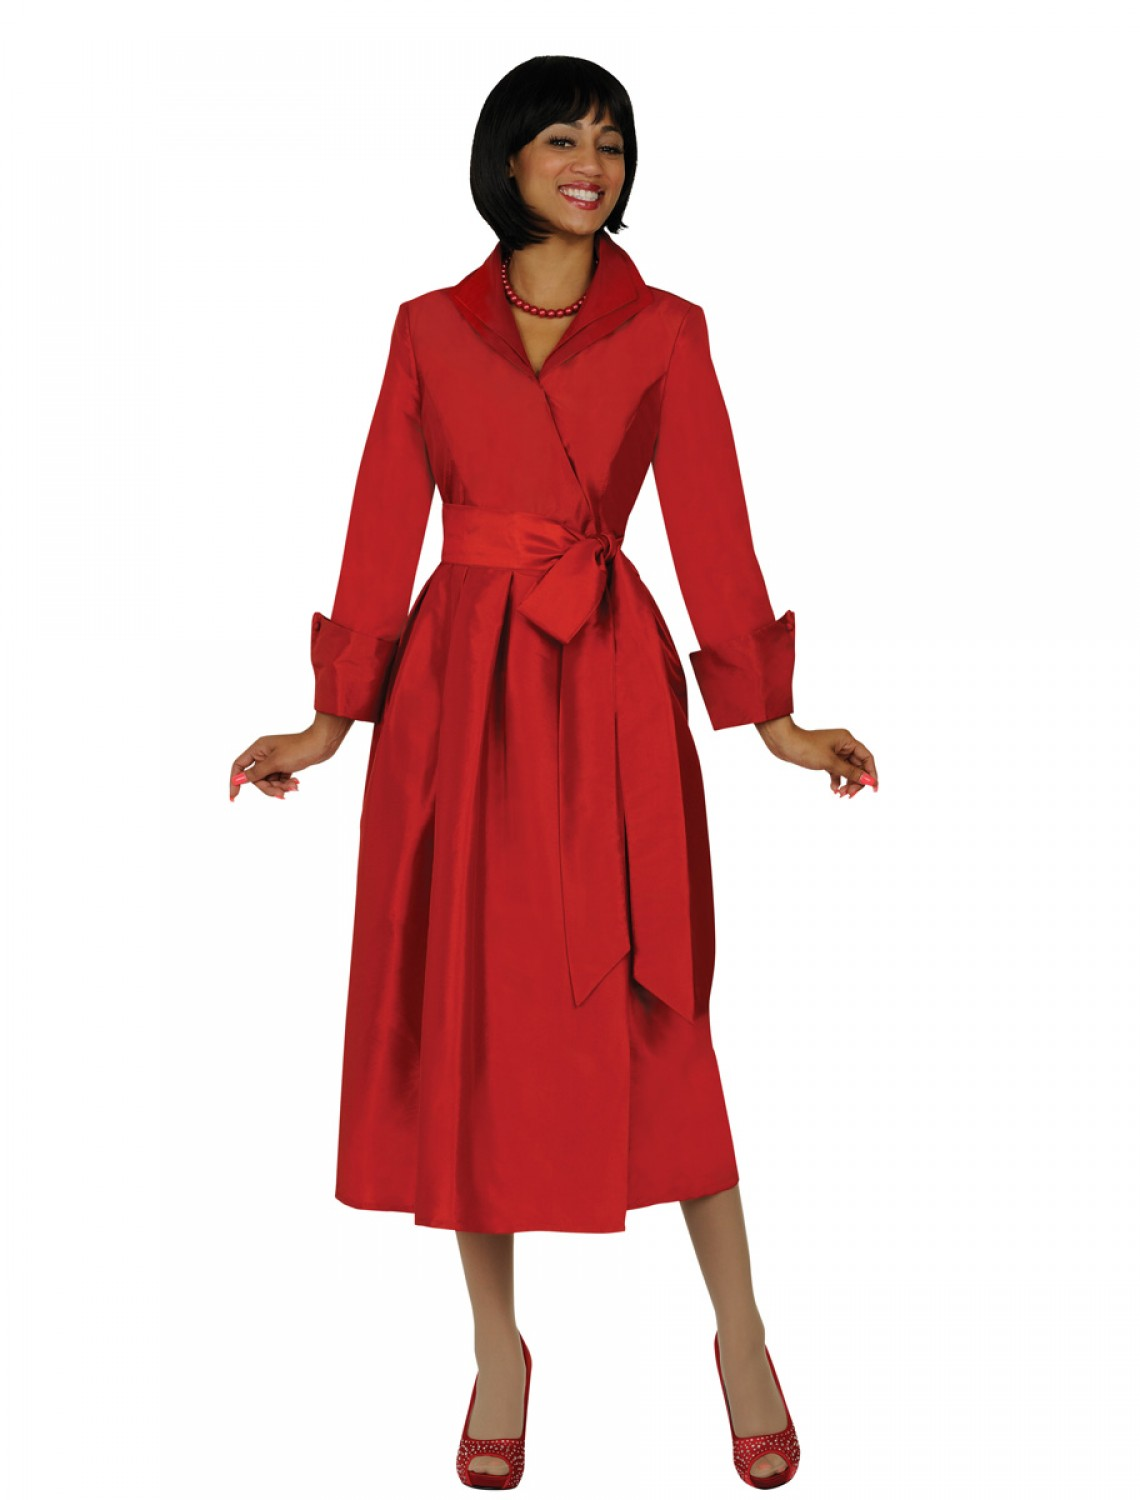 Women Modest Dresses for Church GARNET RED DN5371 ...